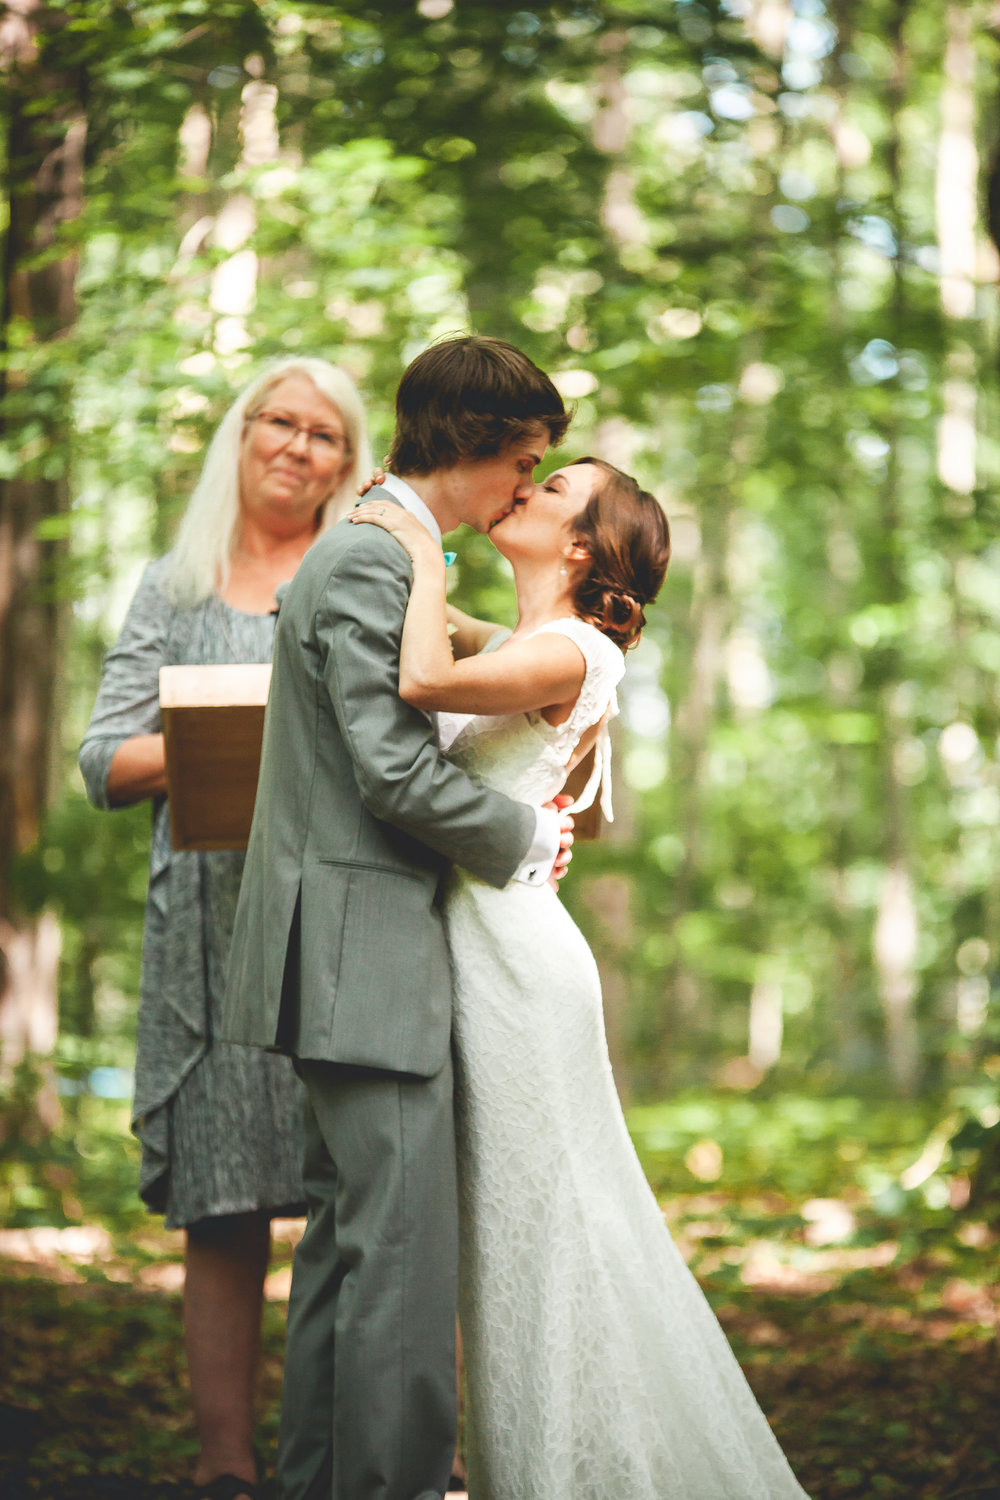 Amy D Photography- Barrie Wedding Photography- Wedding Photography Barrie- Forest Wedding - Forest Wedding Ceremony- Wedding Ceremony Ideas-91.jpg